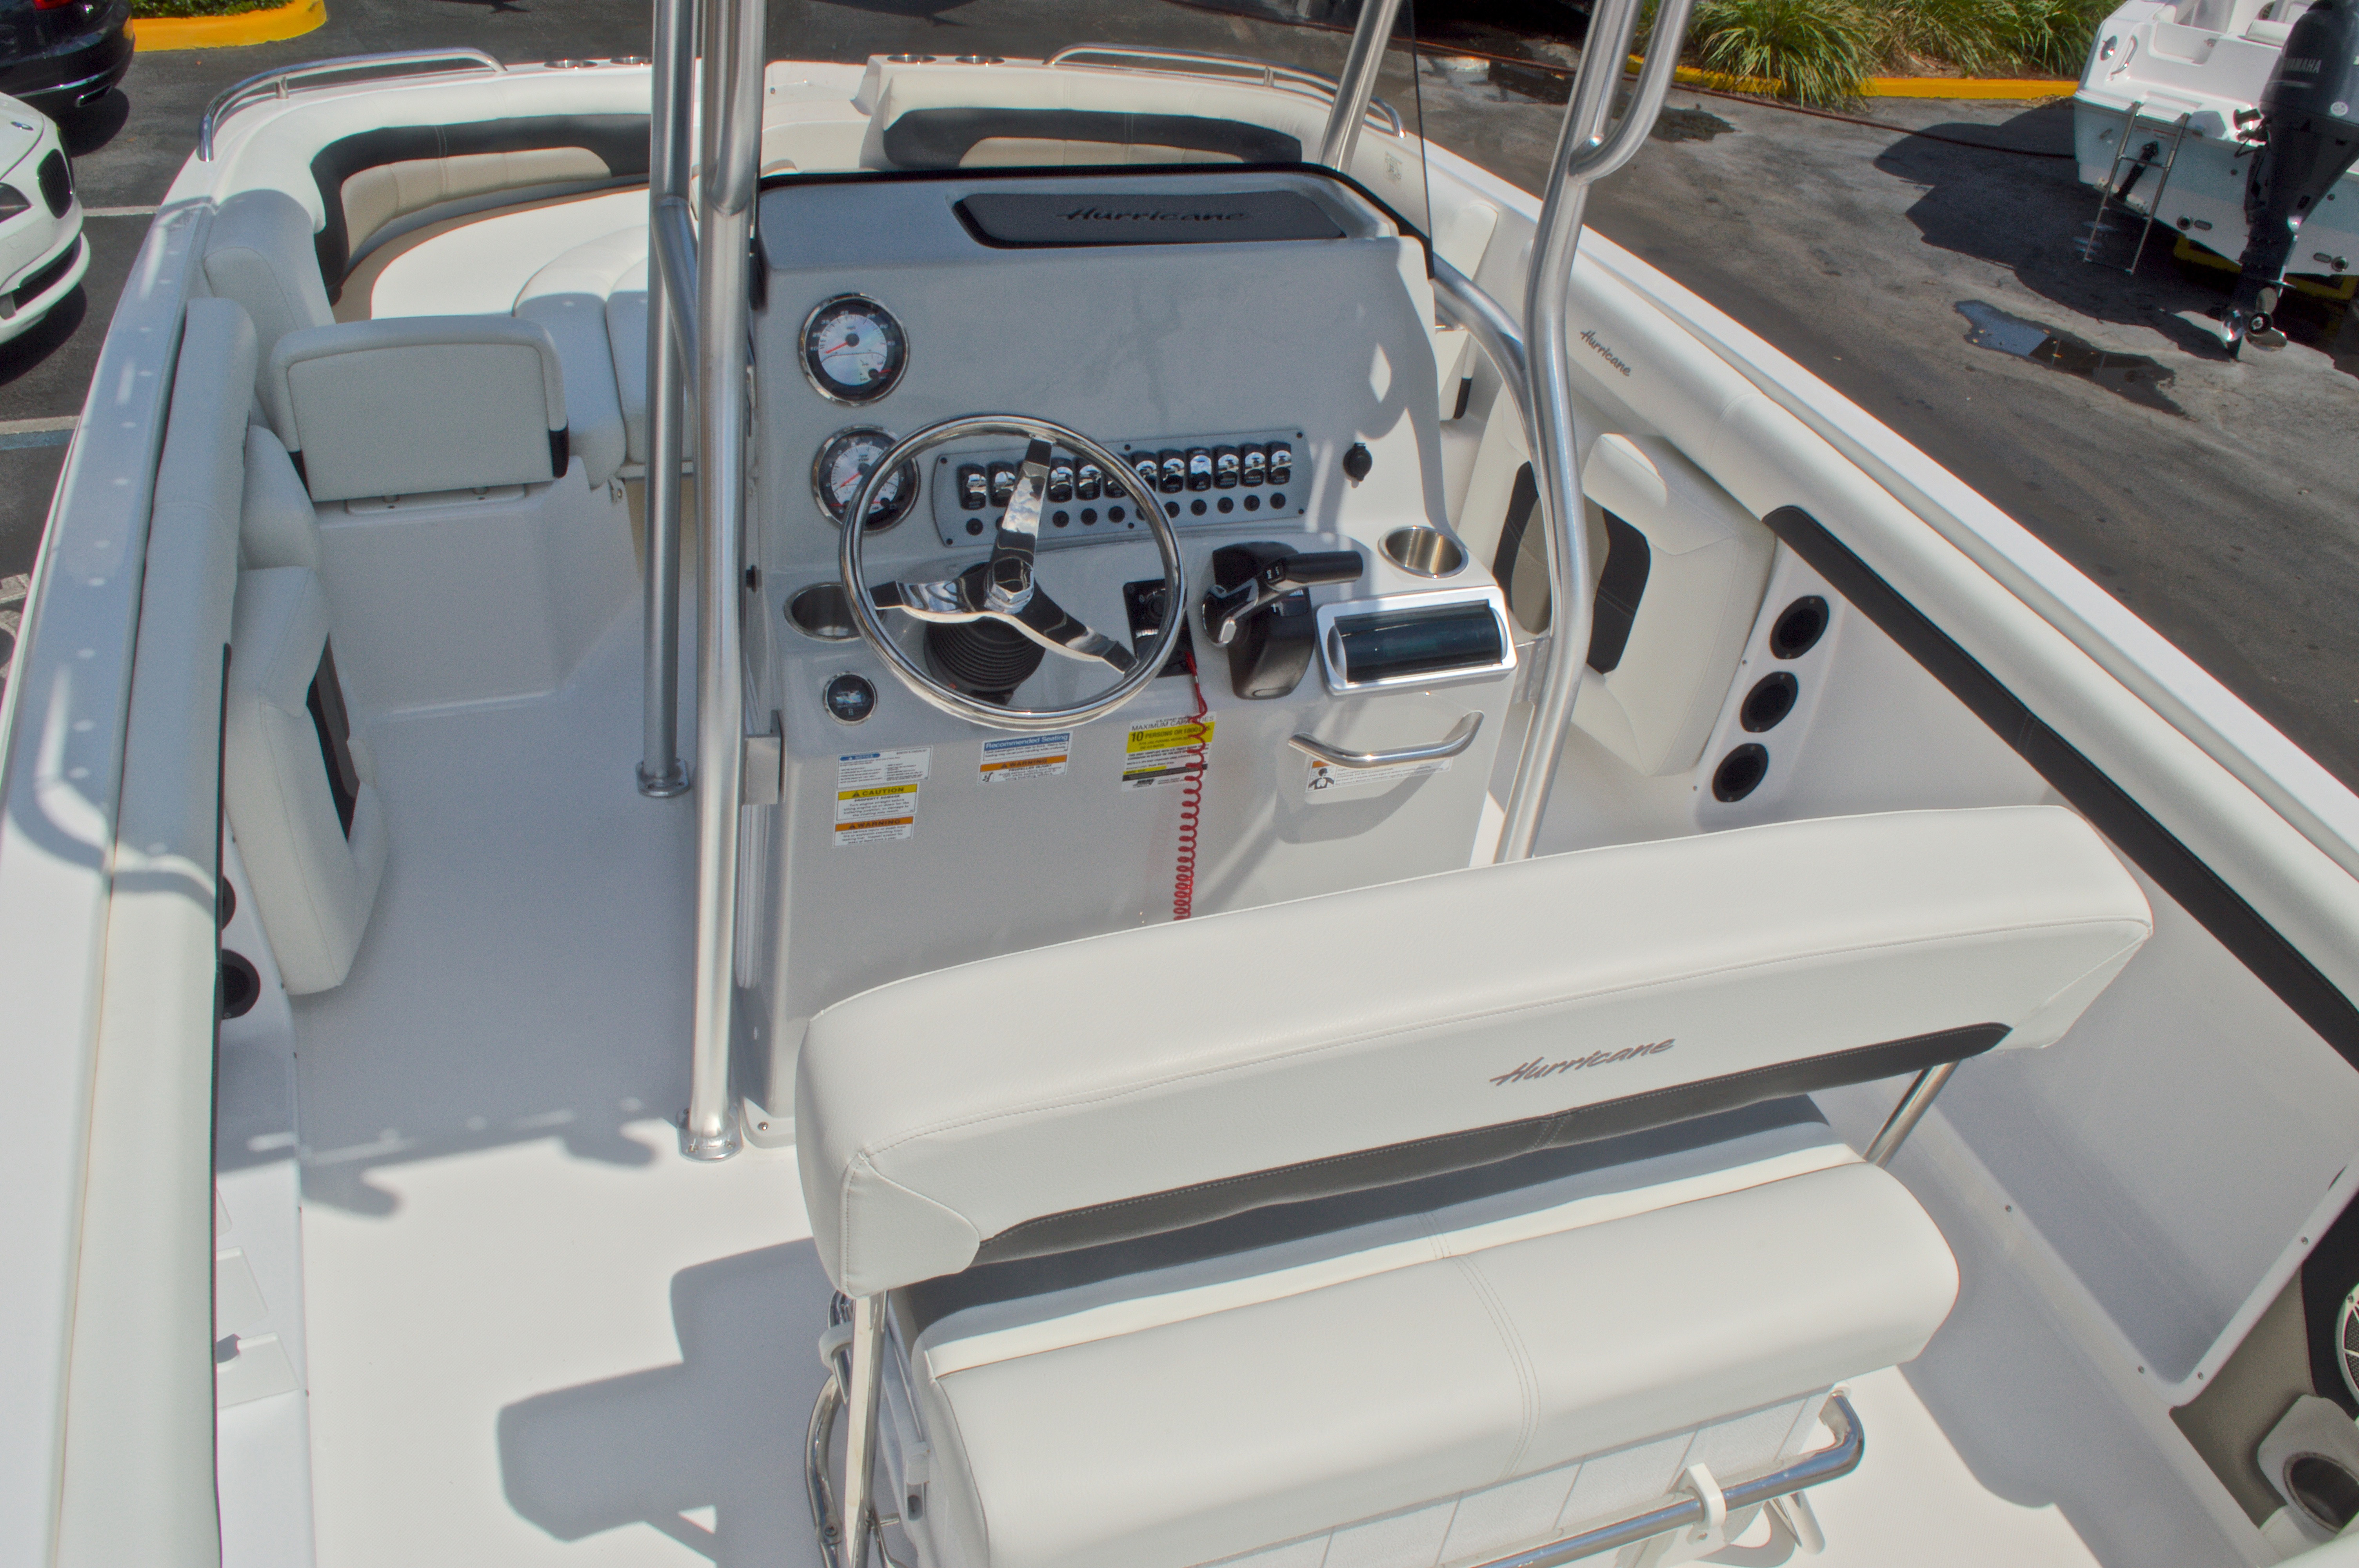 Thumbnail 12 for New 2016 Hurricane CC19 Center Console boat for sale in West Palm Beach, FL